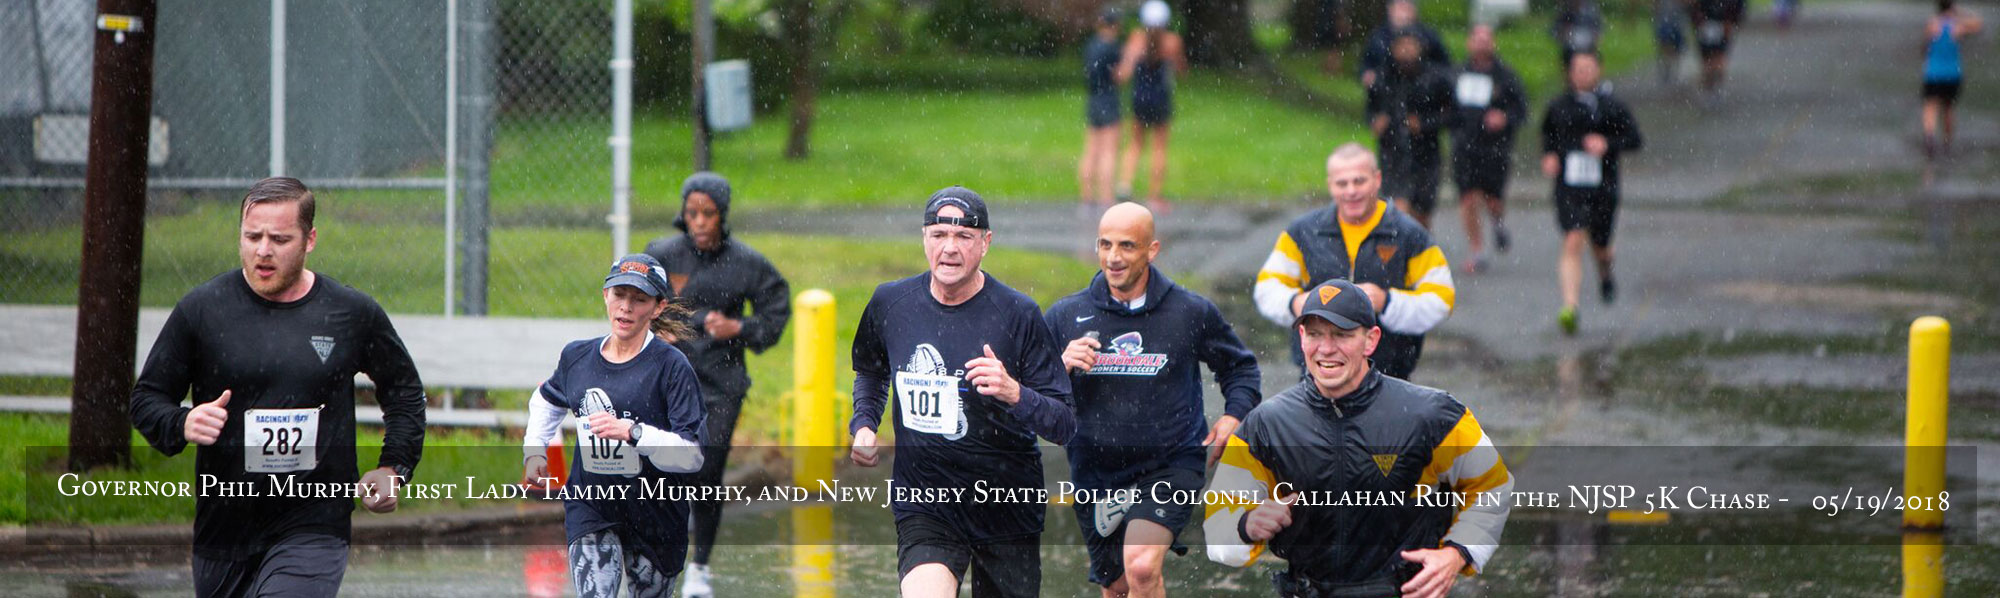 Governor Phil Murphy, First Lady Tammy Murphy, and New Jersey State Police Colonel Callahan run in the NJSP 5K Chase on Saturday, May 19, 2018